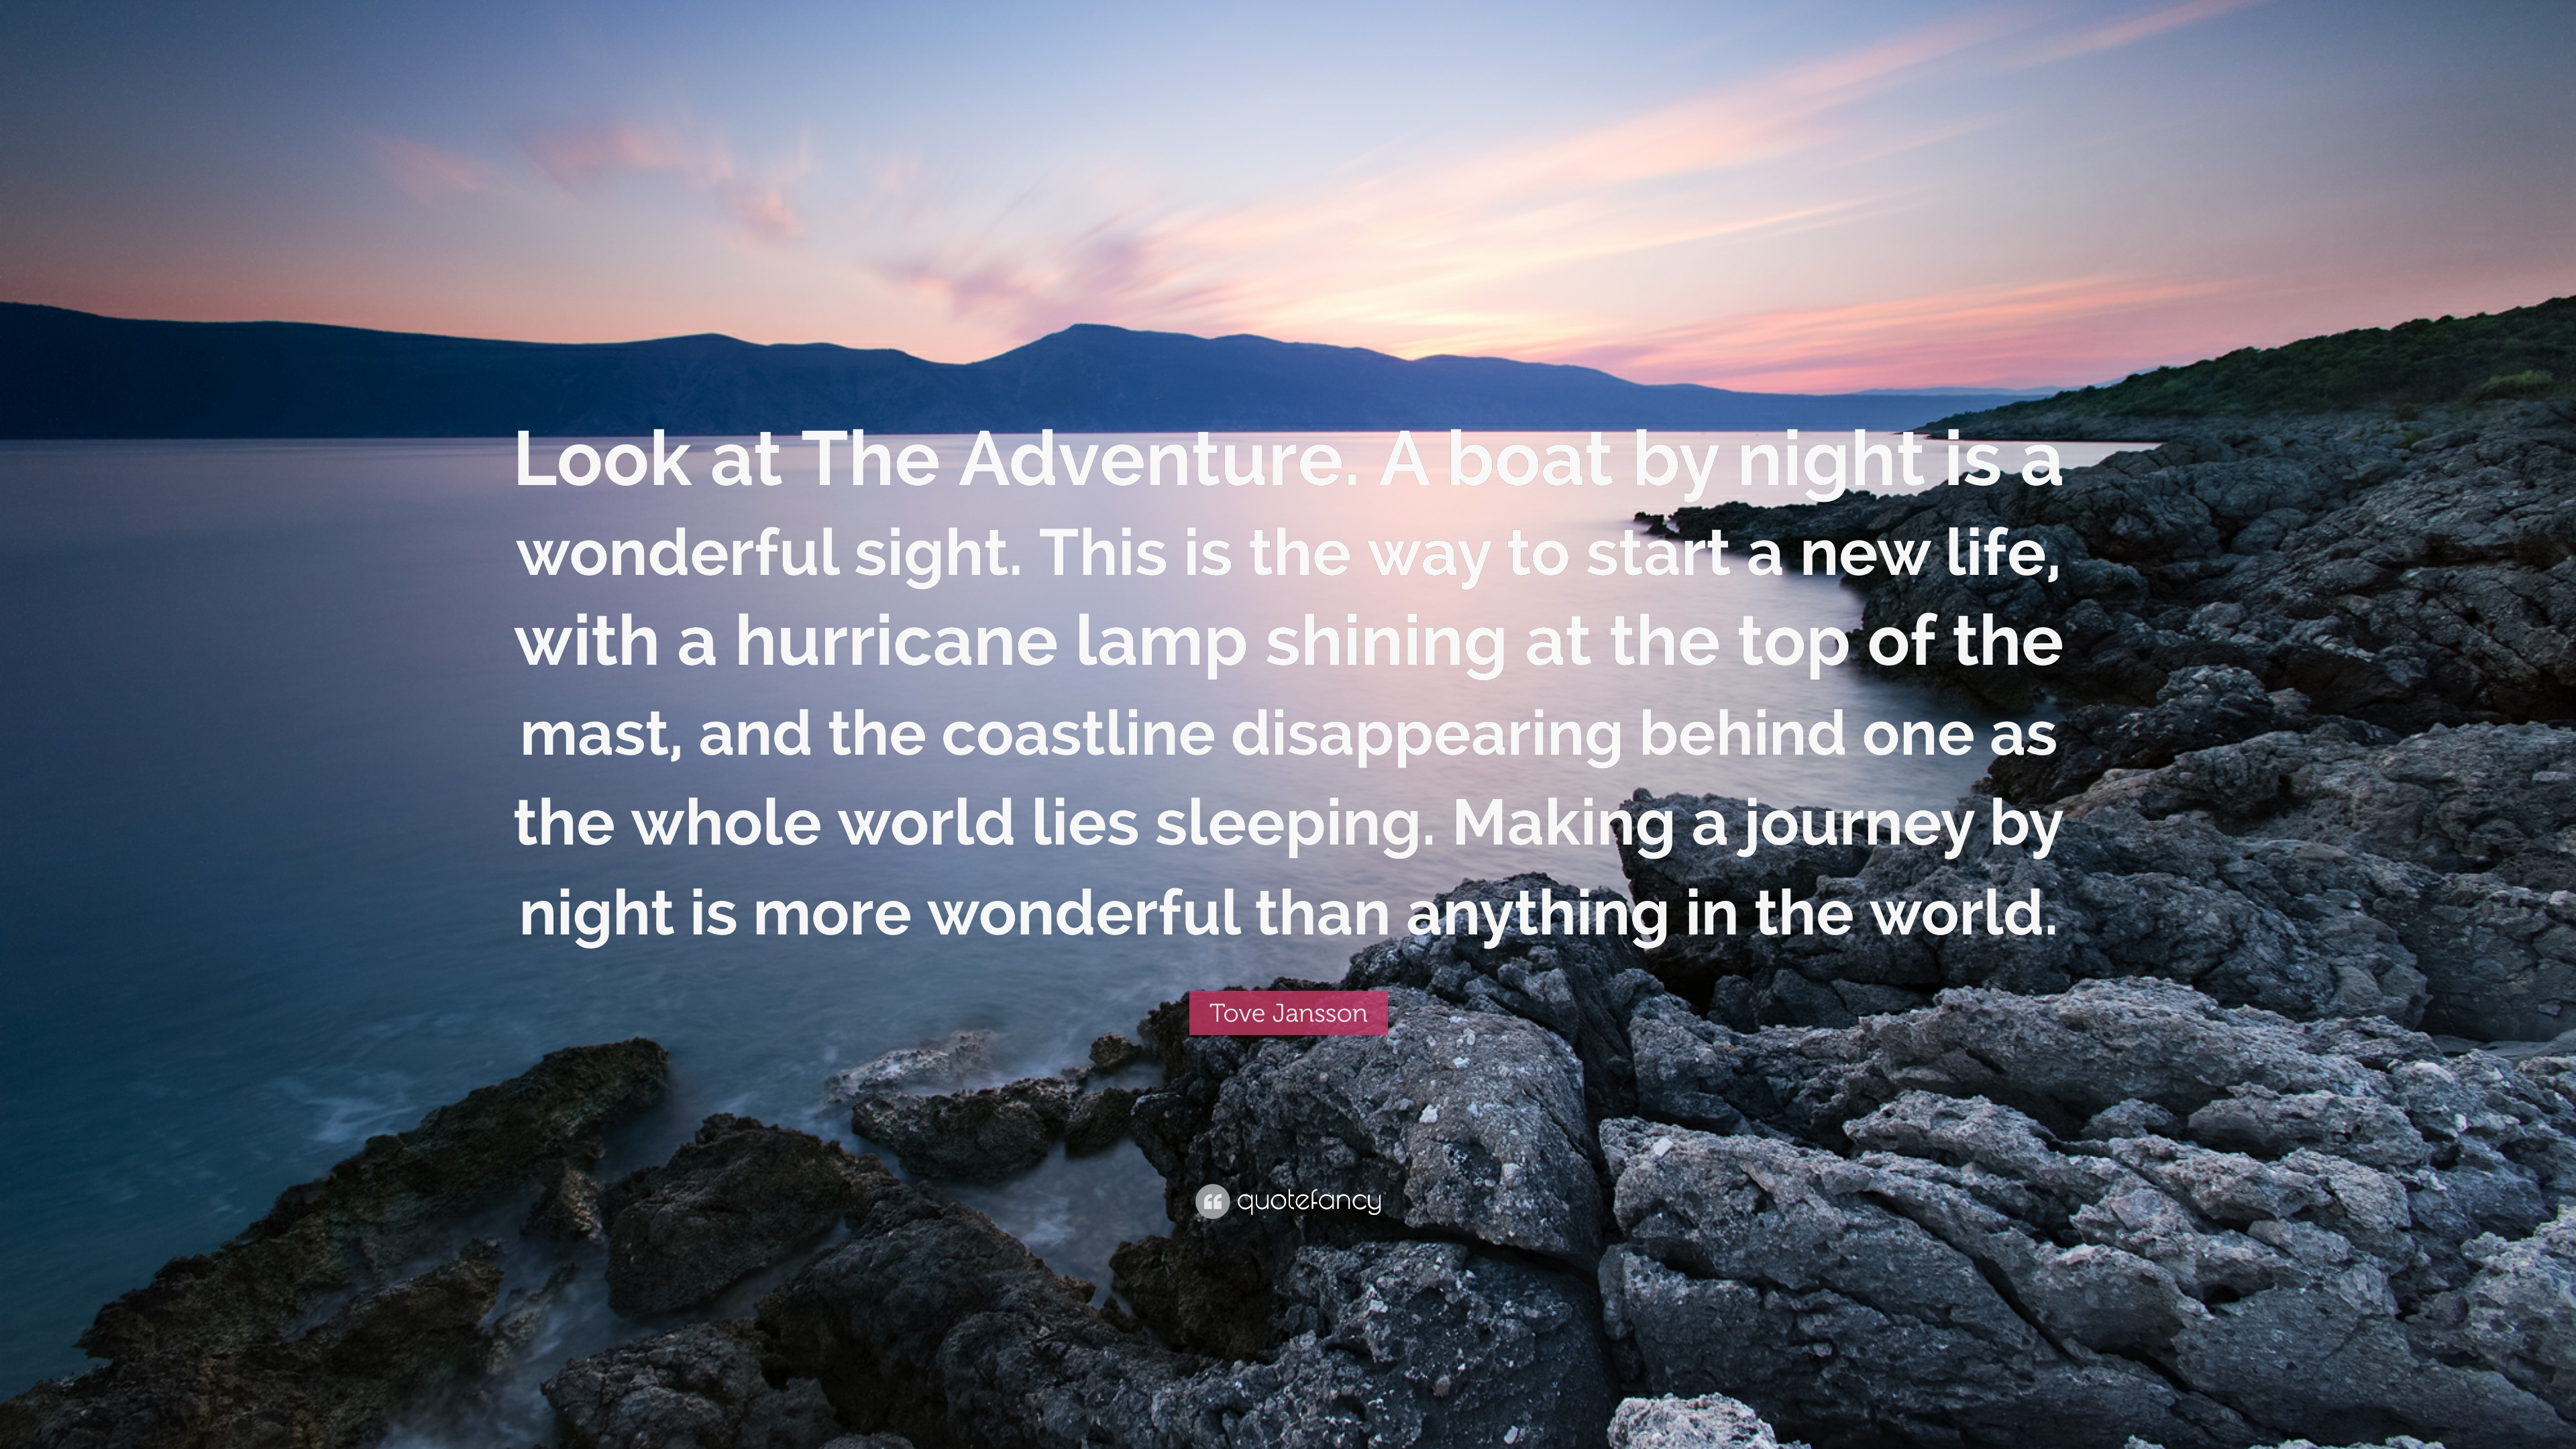 Tove Jansson Quote: U201cLook At The Adventure. A Boat By Night Is A